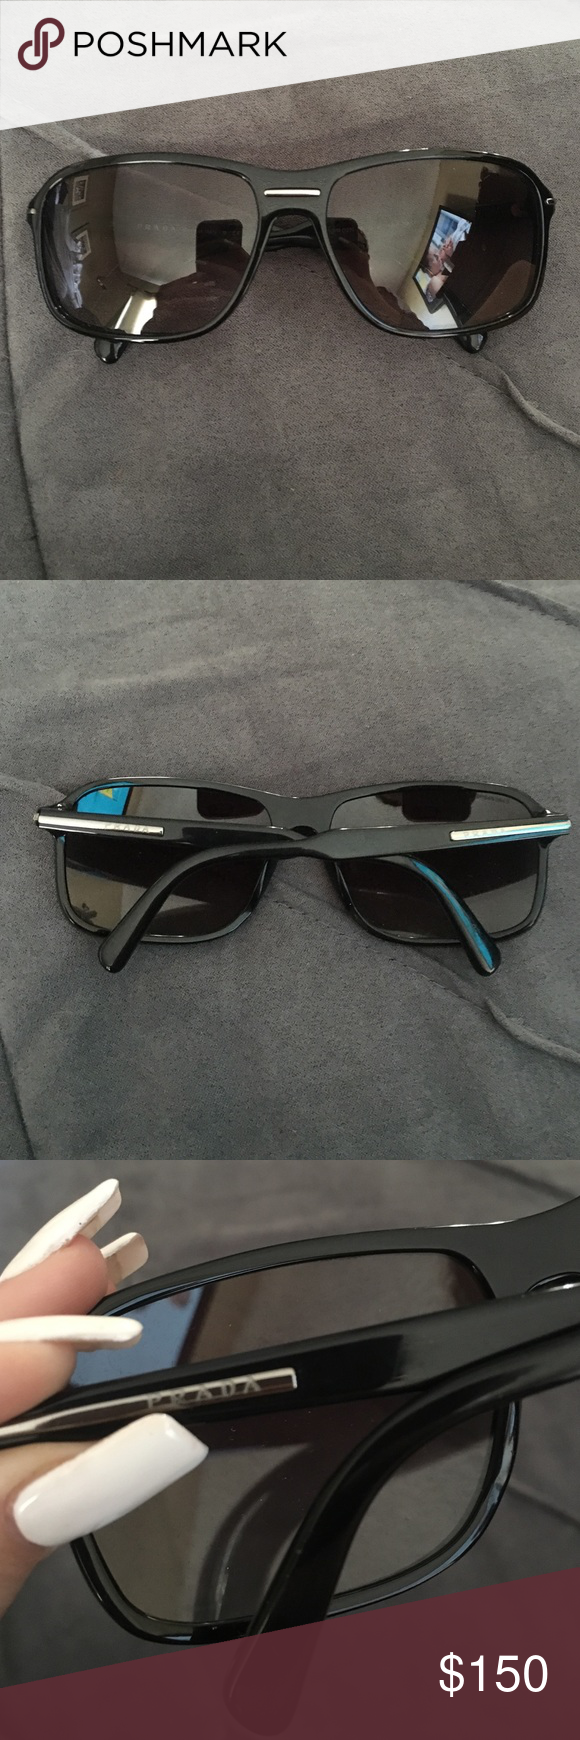 Prada Sunglasses. Look brand new! Men's Case and cleaning cloth included Prada Other